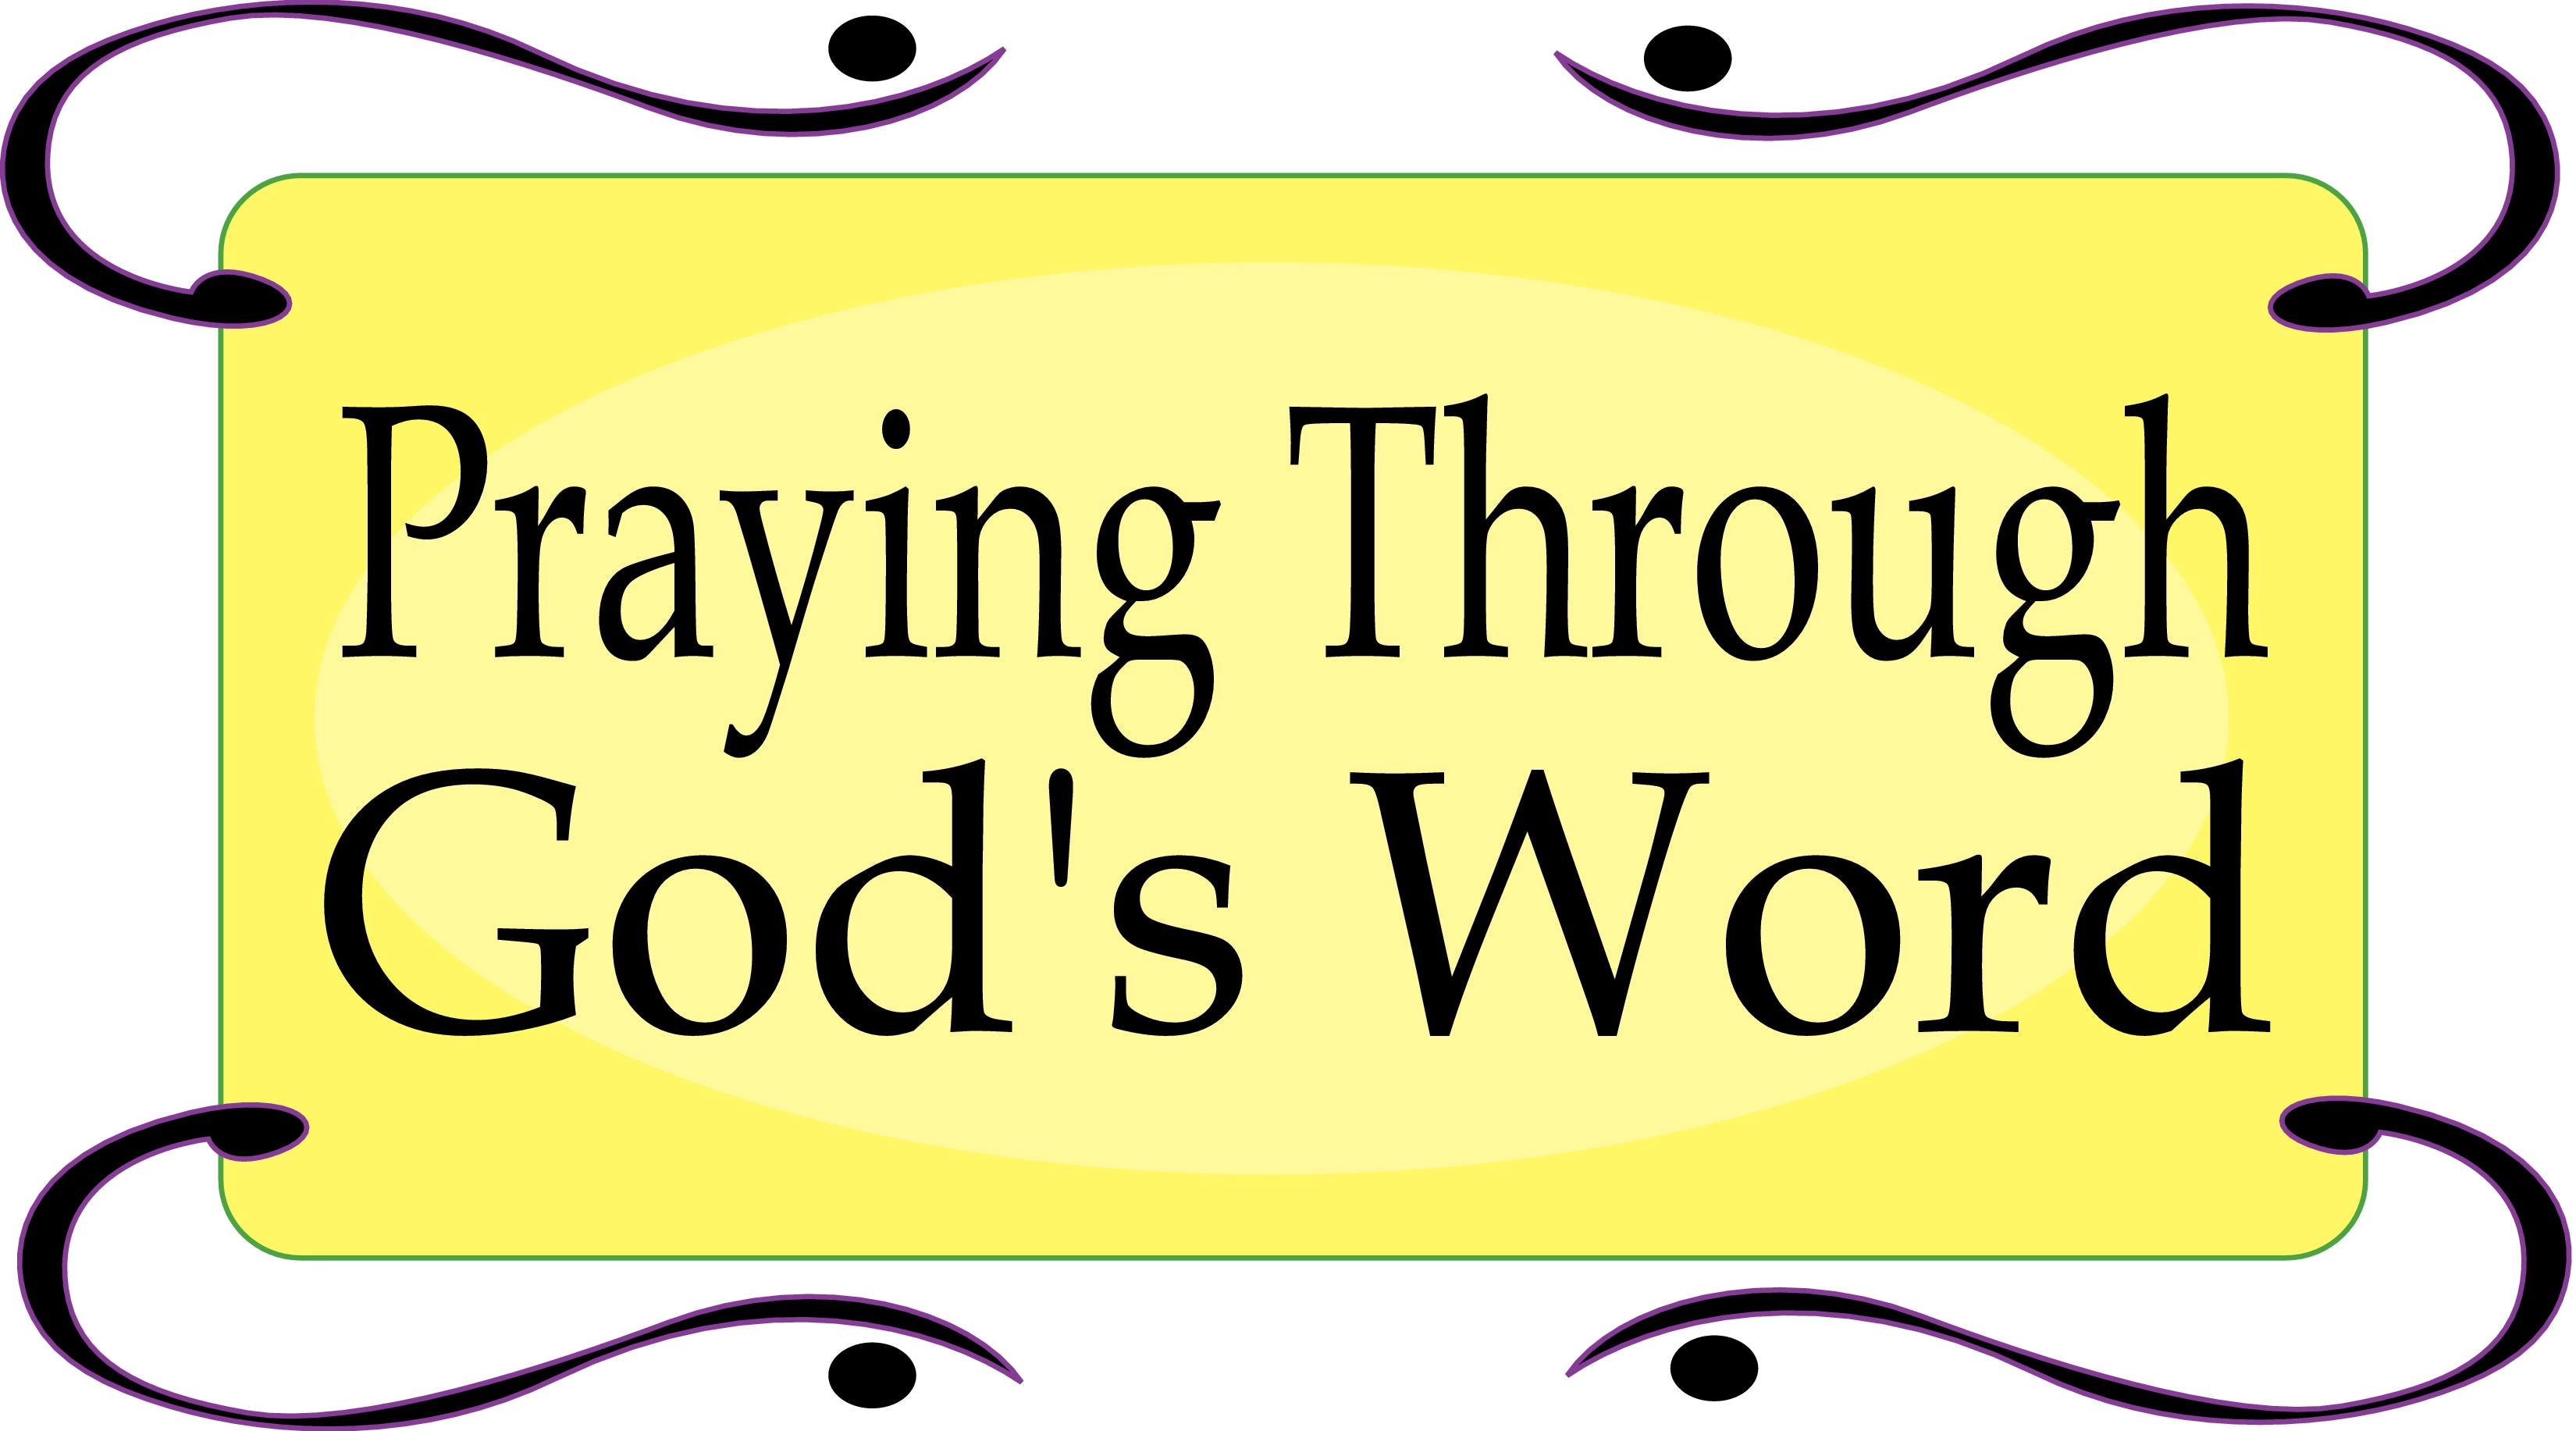 prayer breakfast clip art pictures to pin on pinterest